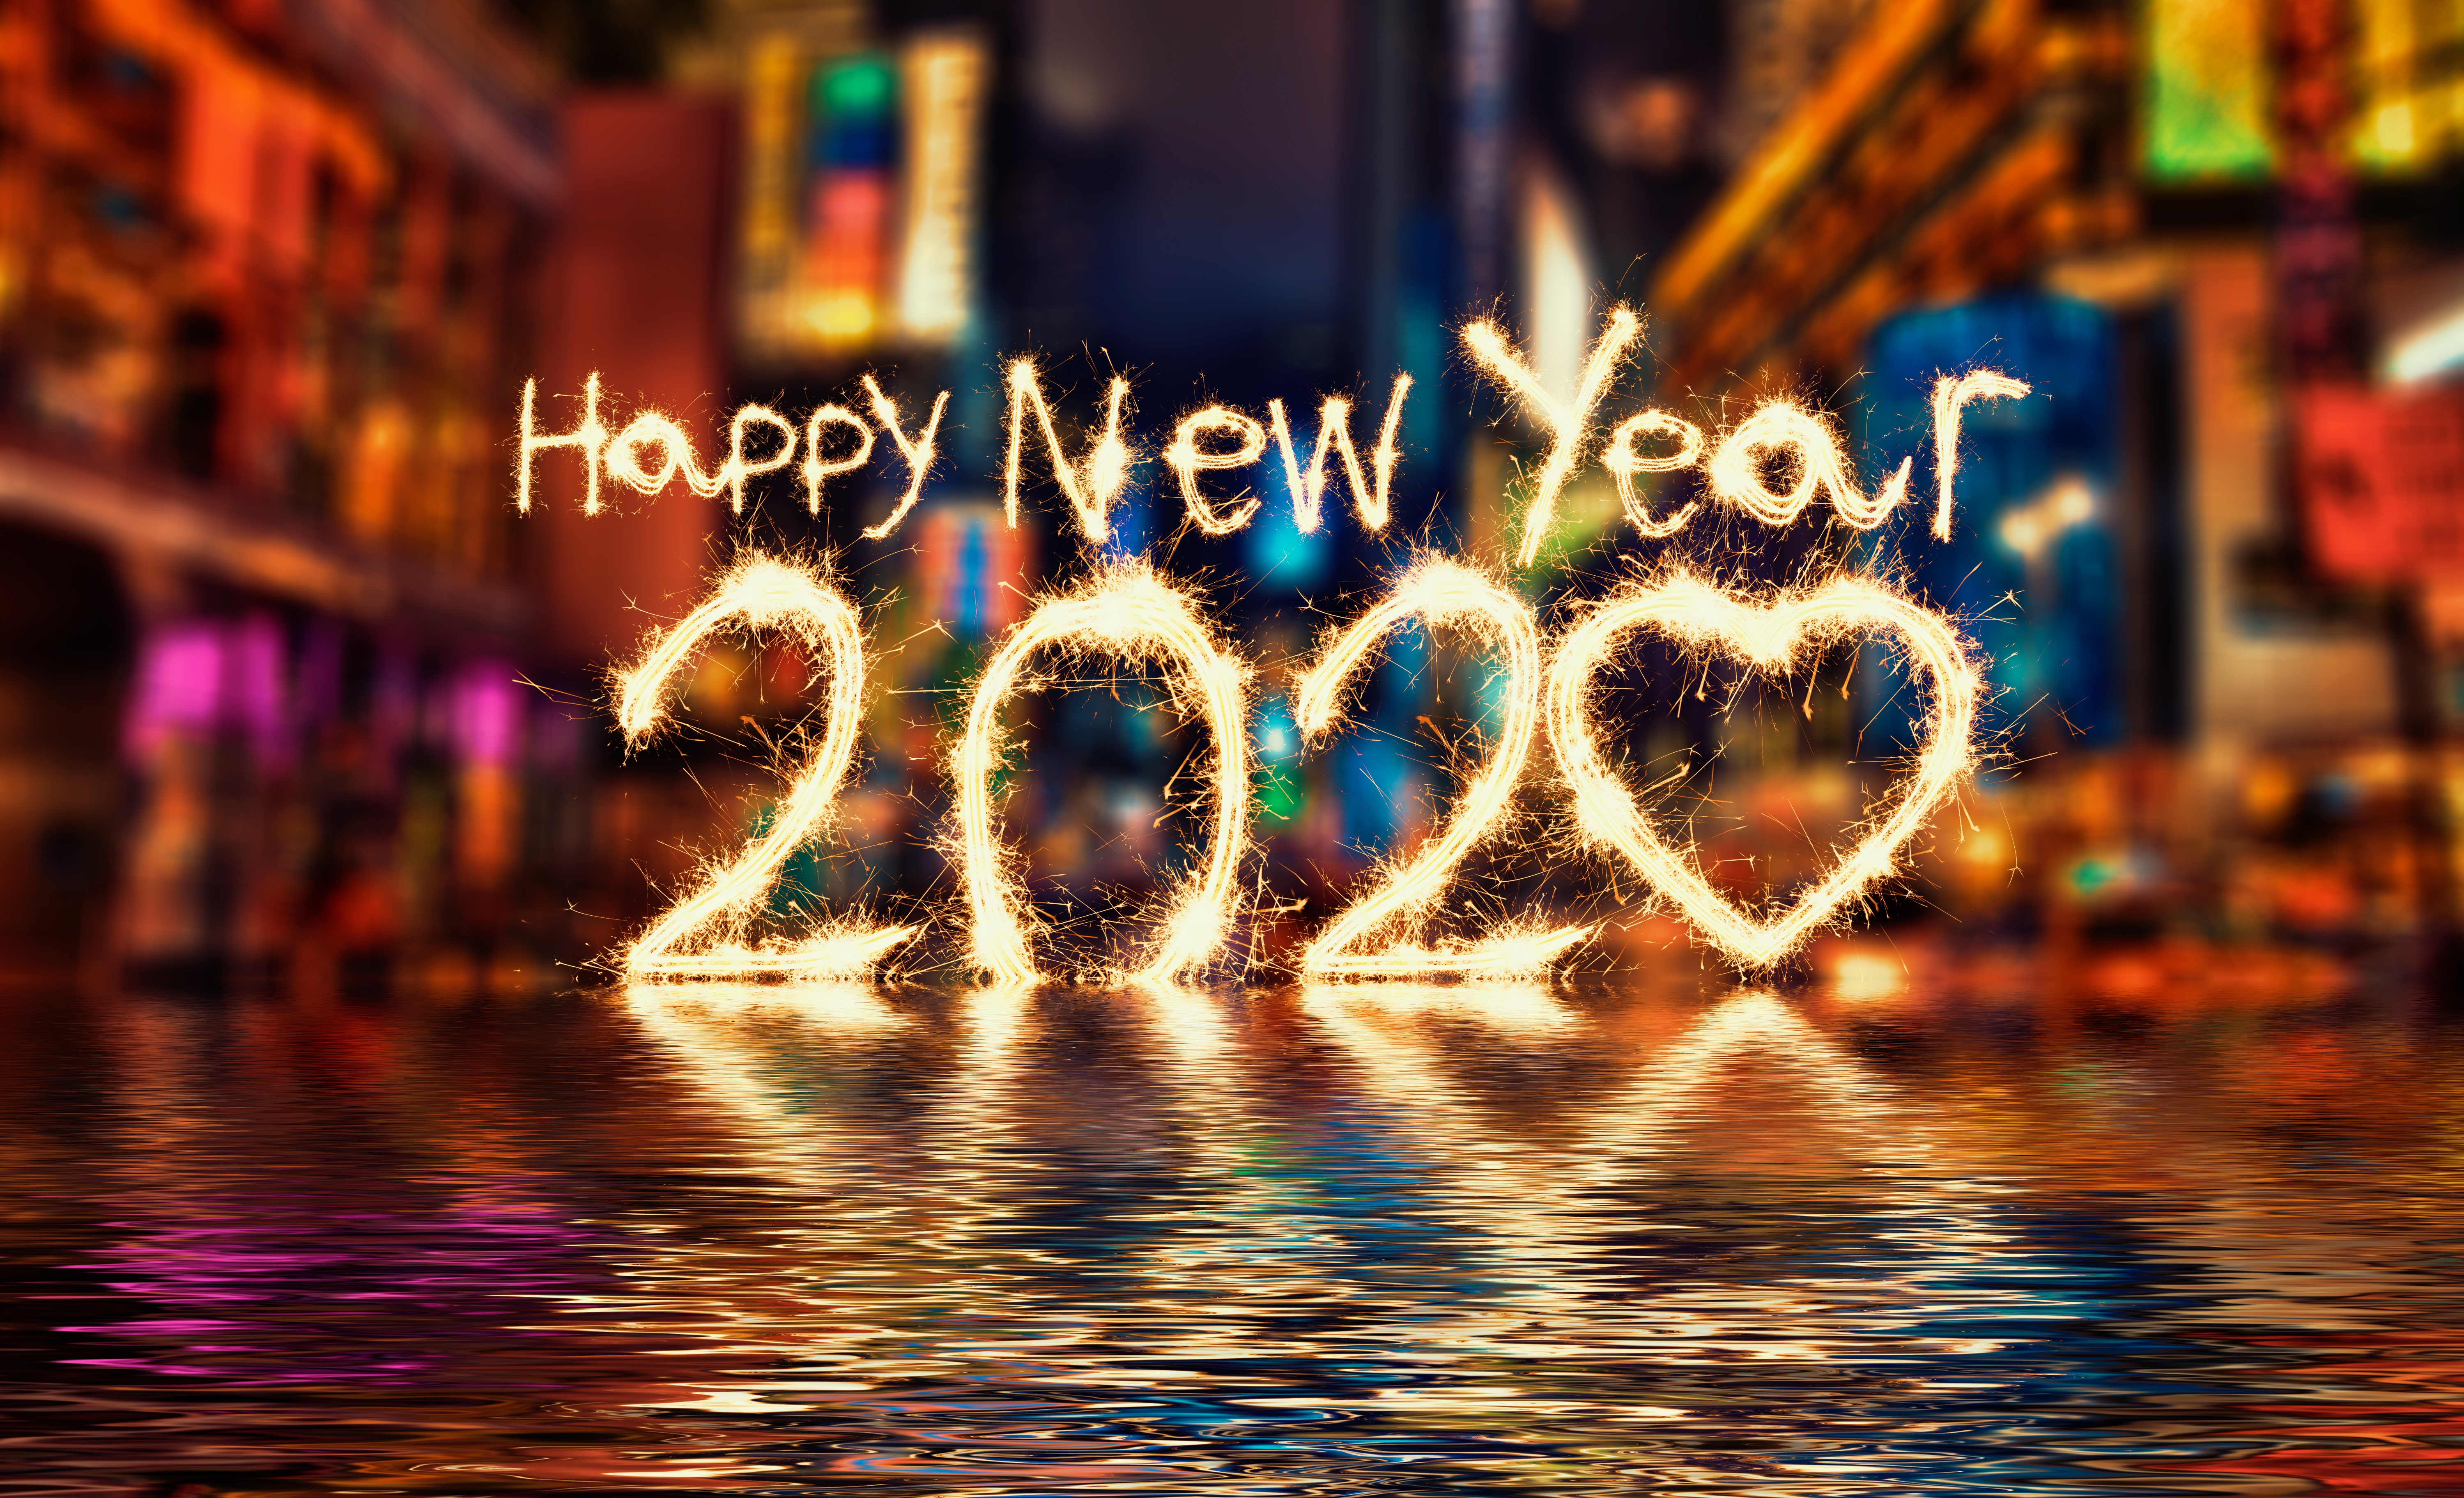 Colorful New Year Wallpaper 5k Retina Ultra HD Wallpaper 6000x3648